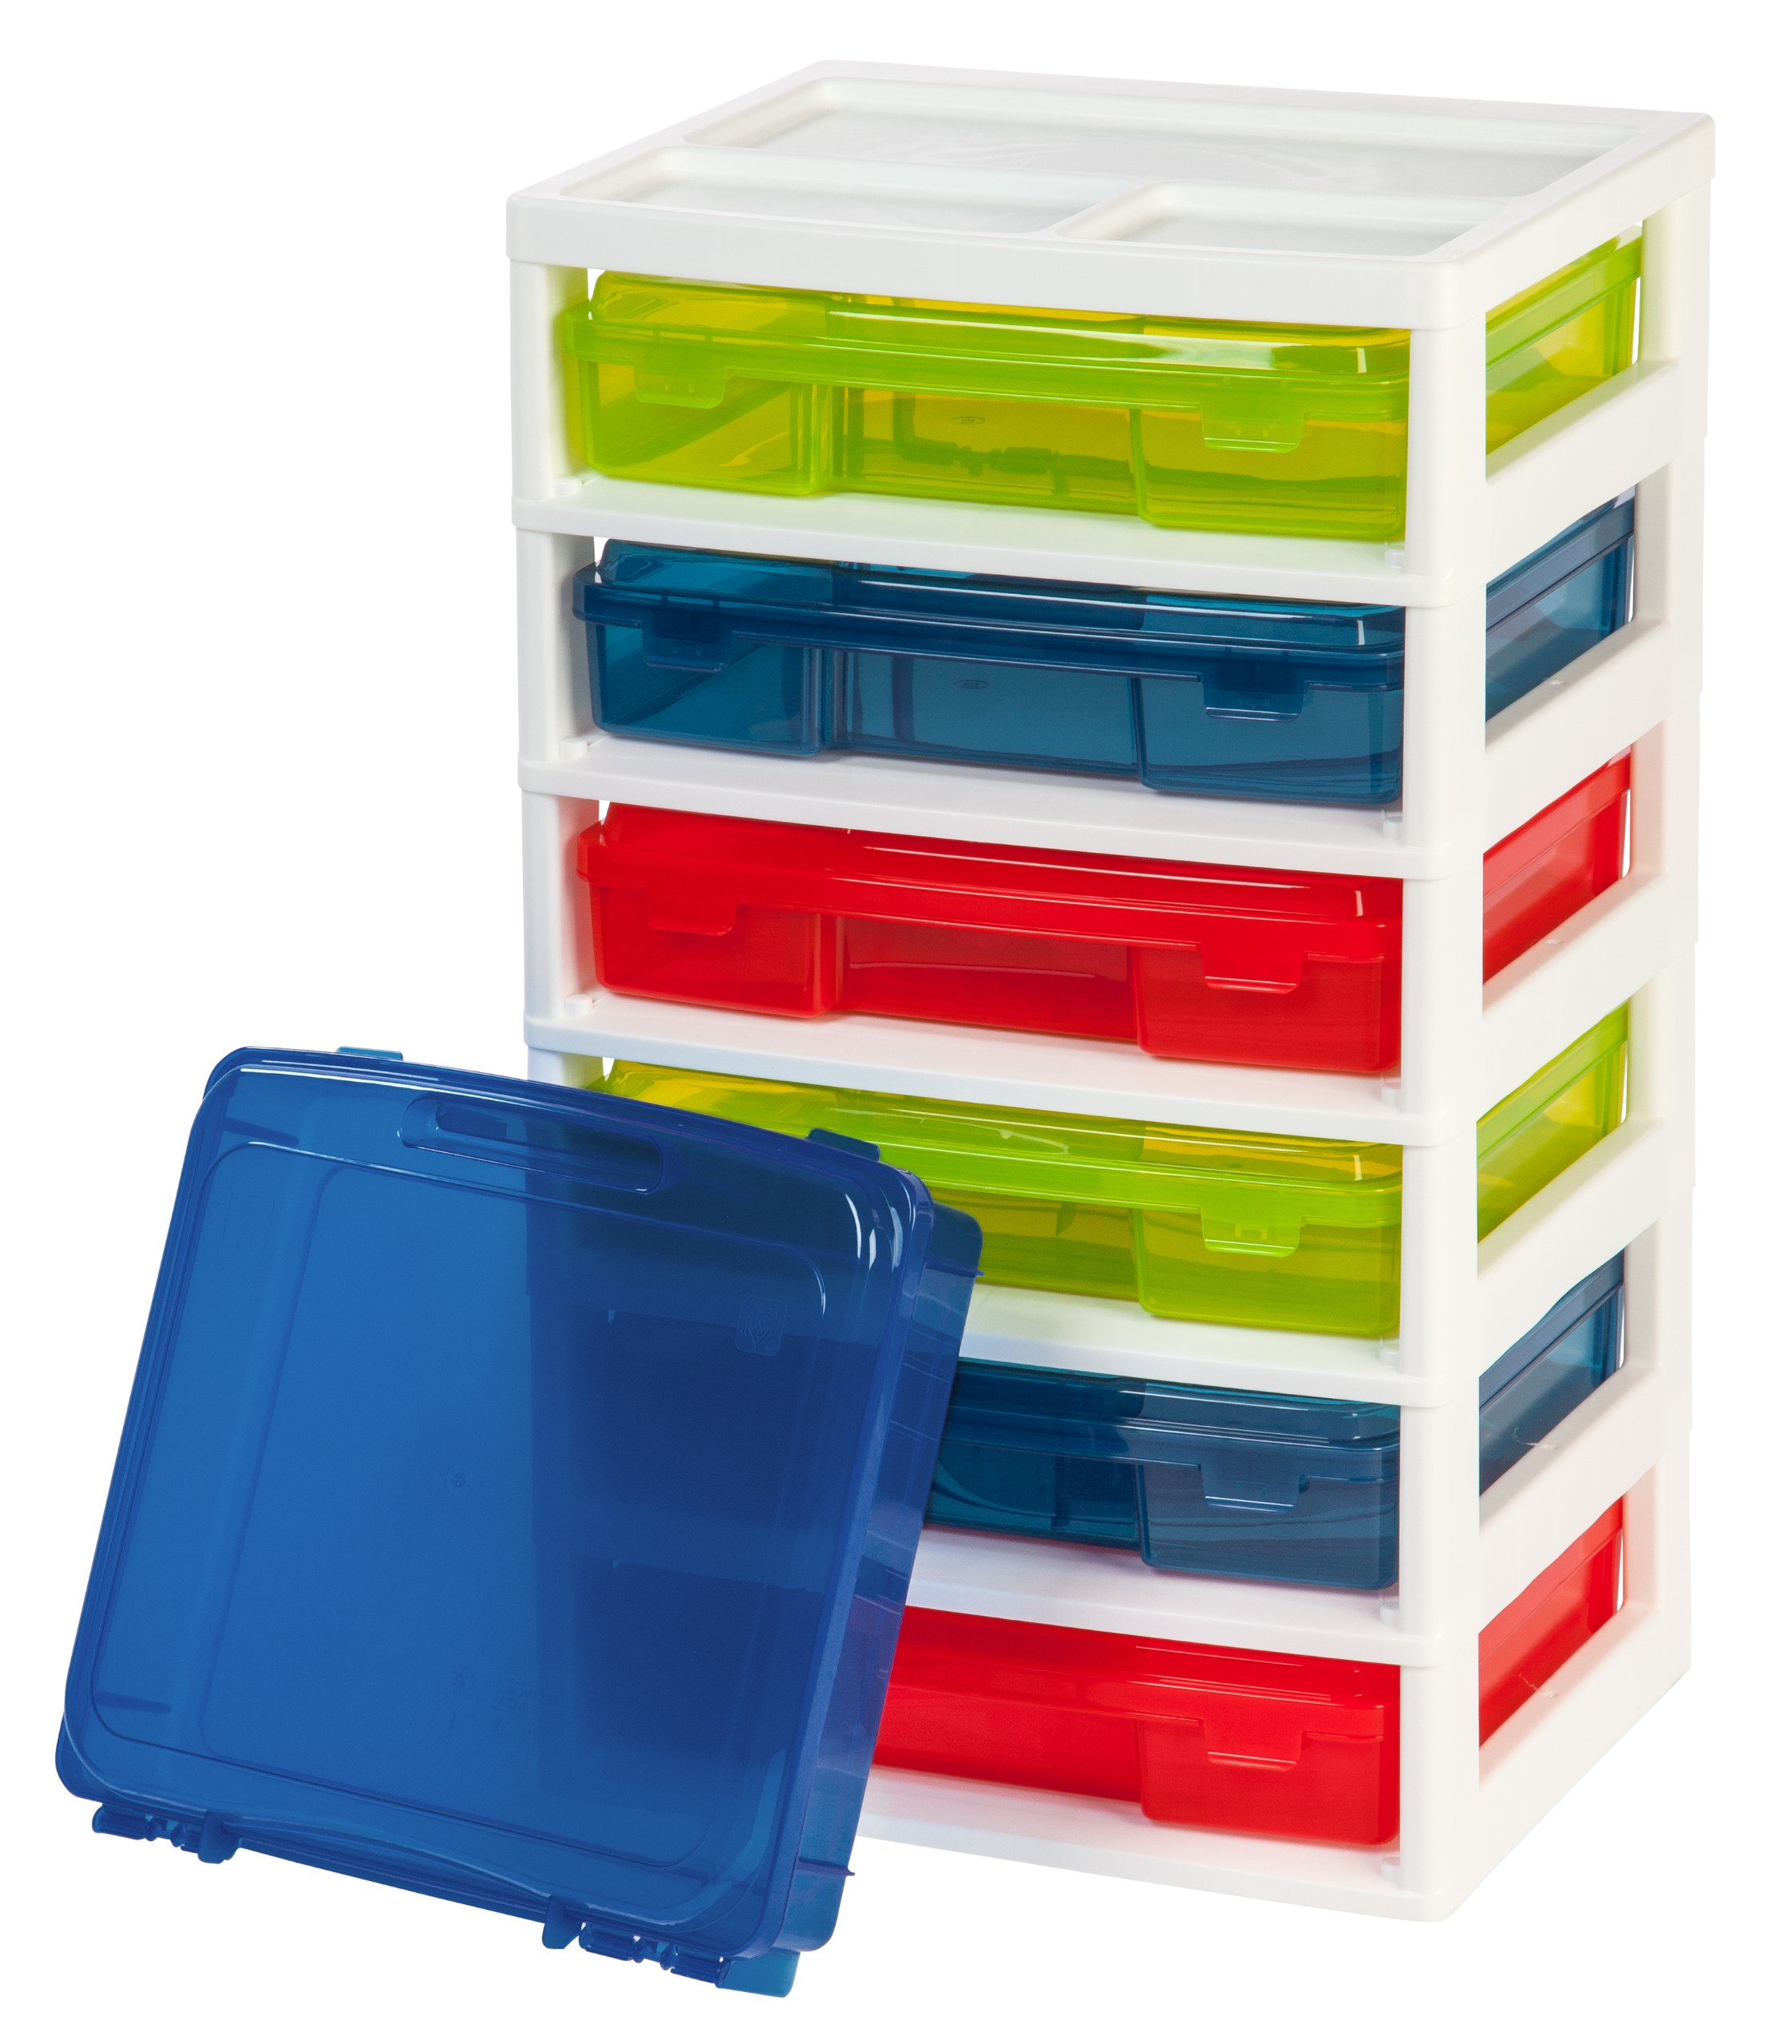 IRIS 6-Case Activity Chest with Organizer Top, Assorted Colors by IRIS USA, Inc.